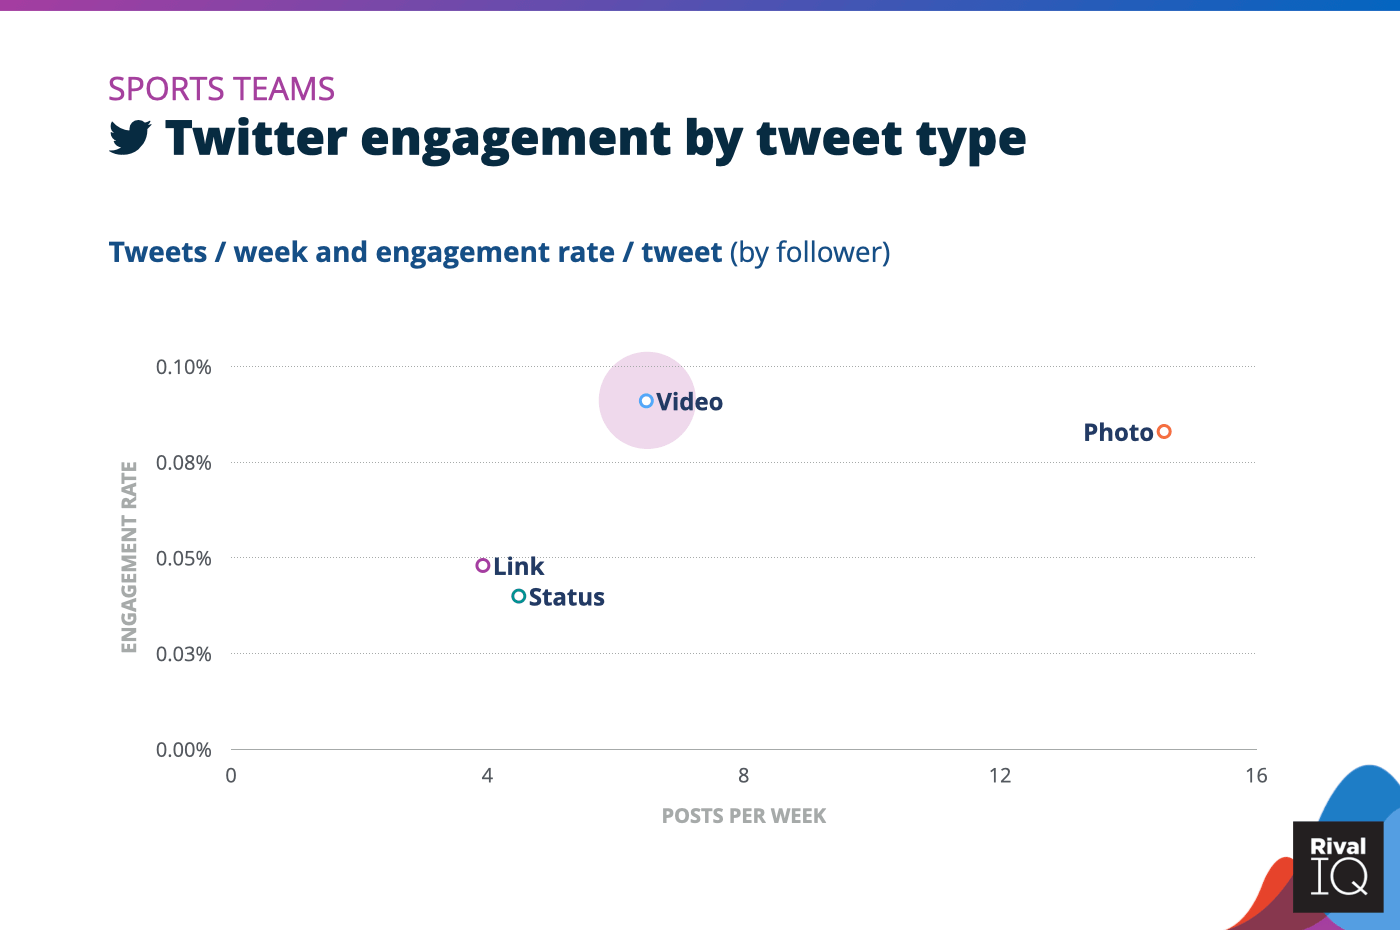 Chart of Twitter posts per week and engagement rate by tweet type, Sports Teams